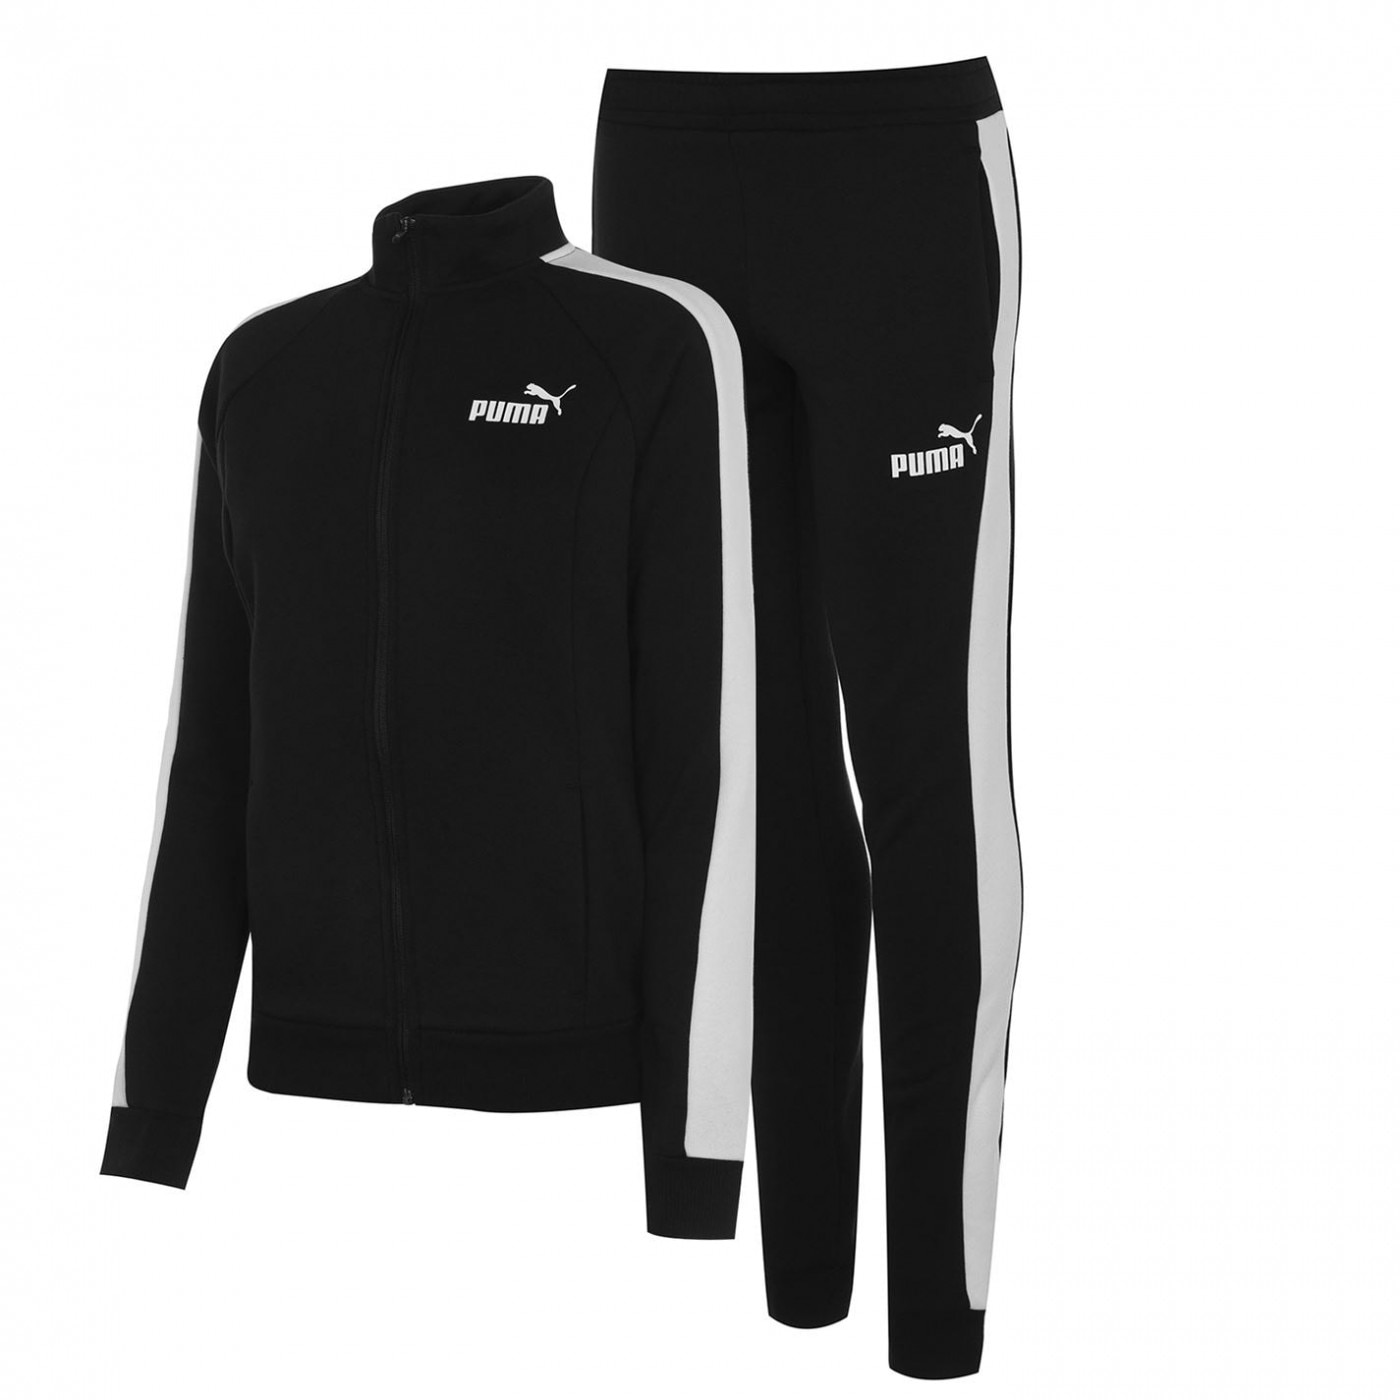 Puma Fleece Sweat Suit Womens